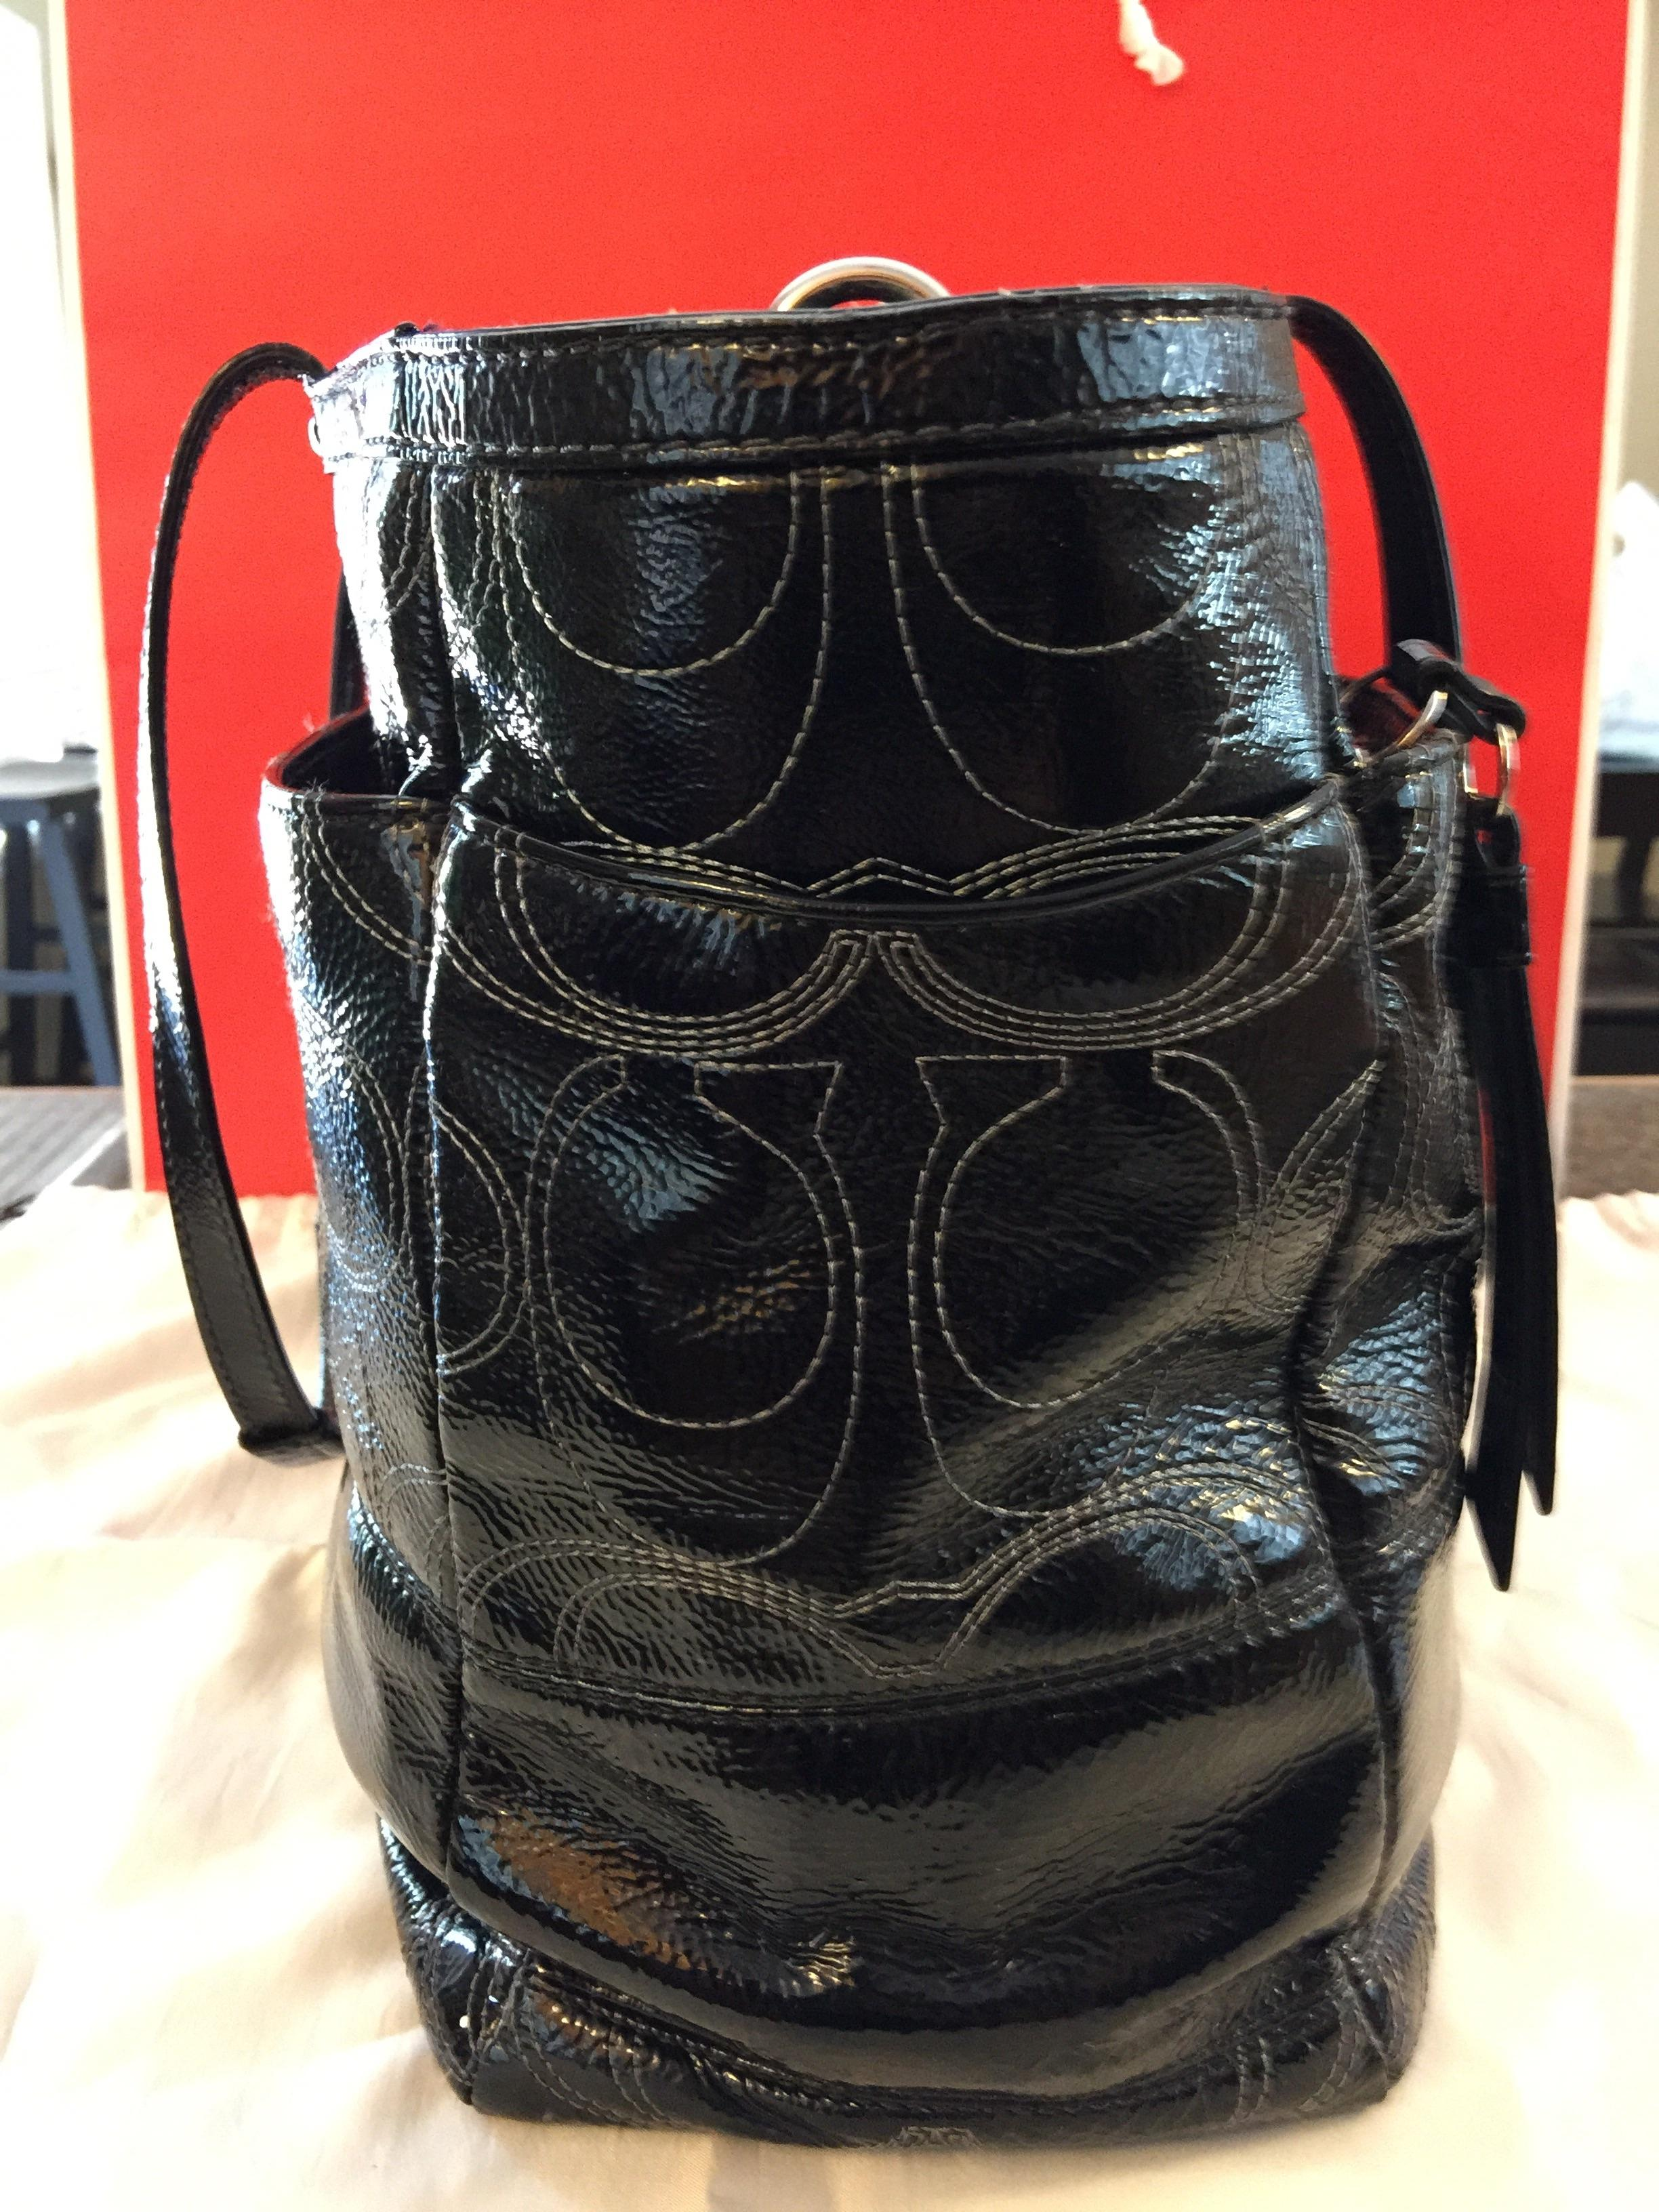 where to buy coach baby bag tote in saffiano leather vest 44a65 7dad5 e2ed234c99824